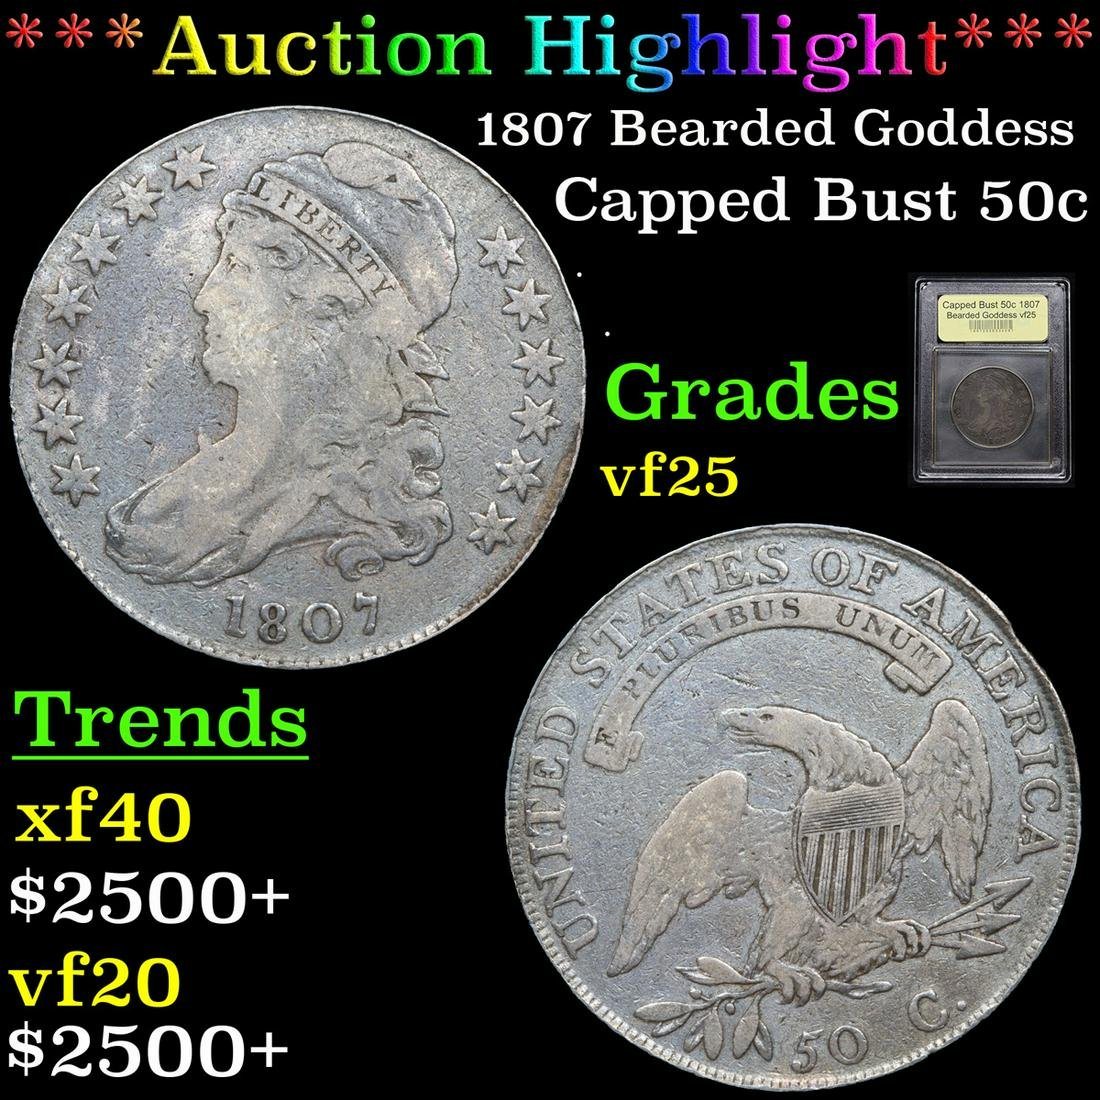 ***Auction Highlight*** 1807 Bearded Goddess Draped